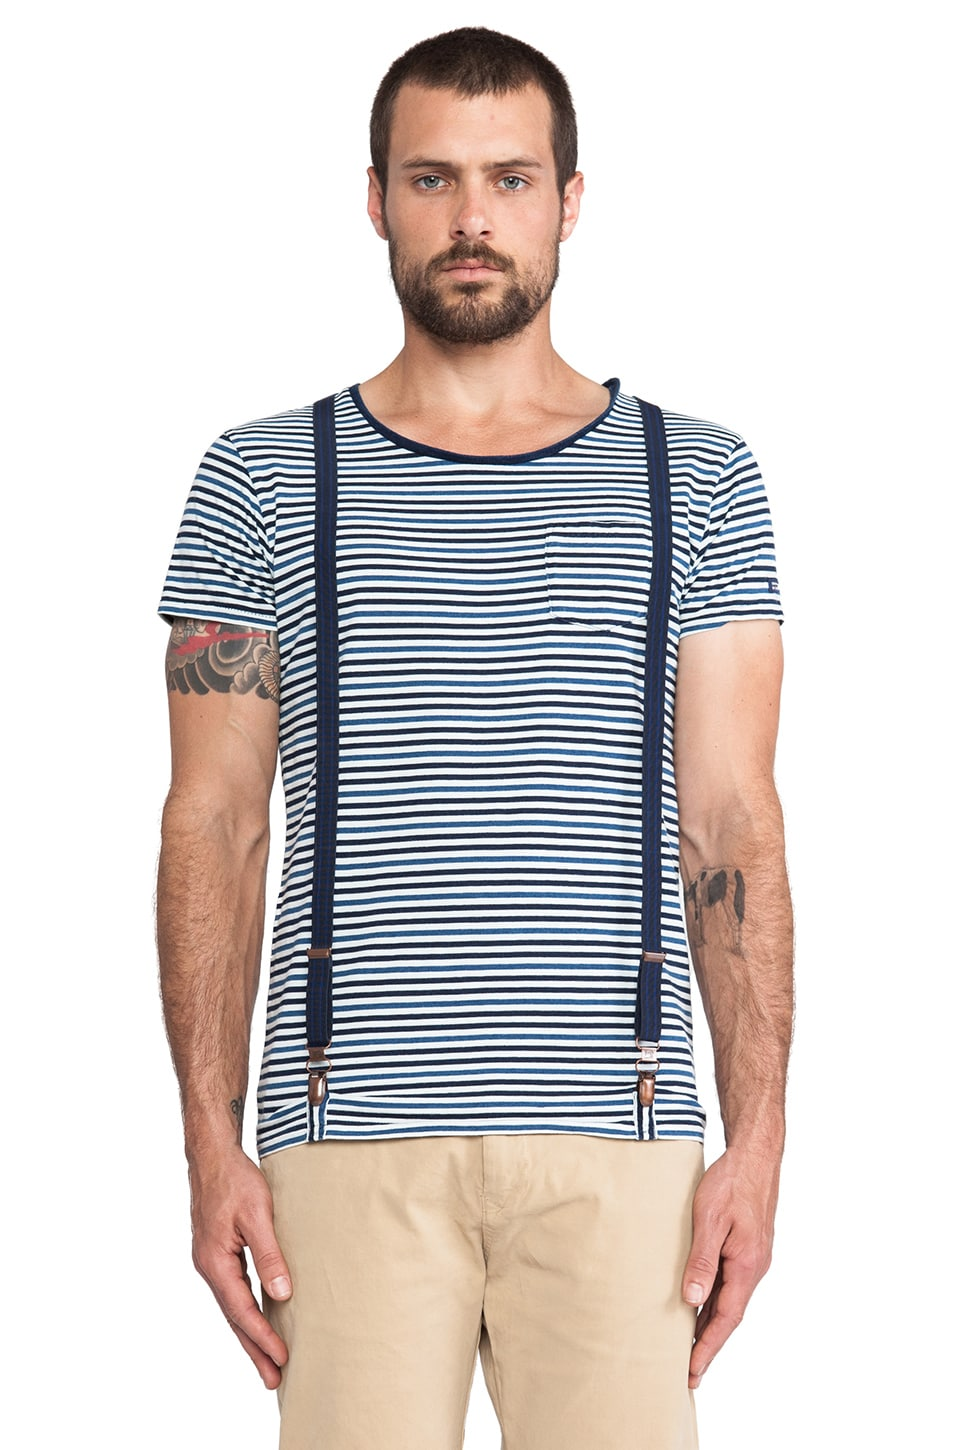 Scotch & Soda Crewneck Suspender Tee in Indigo